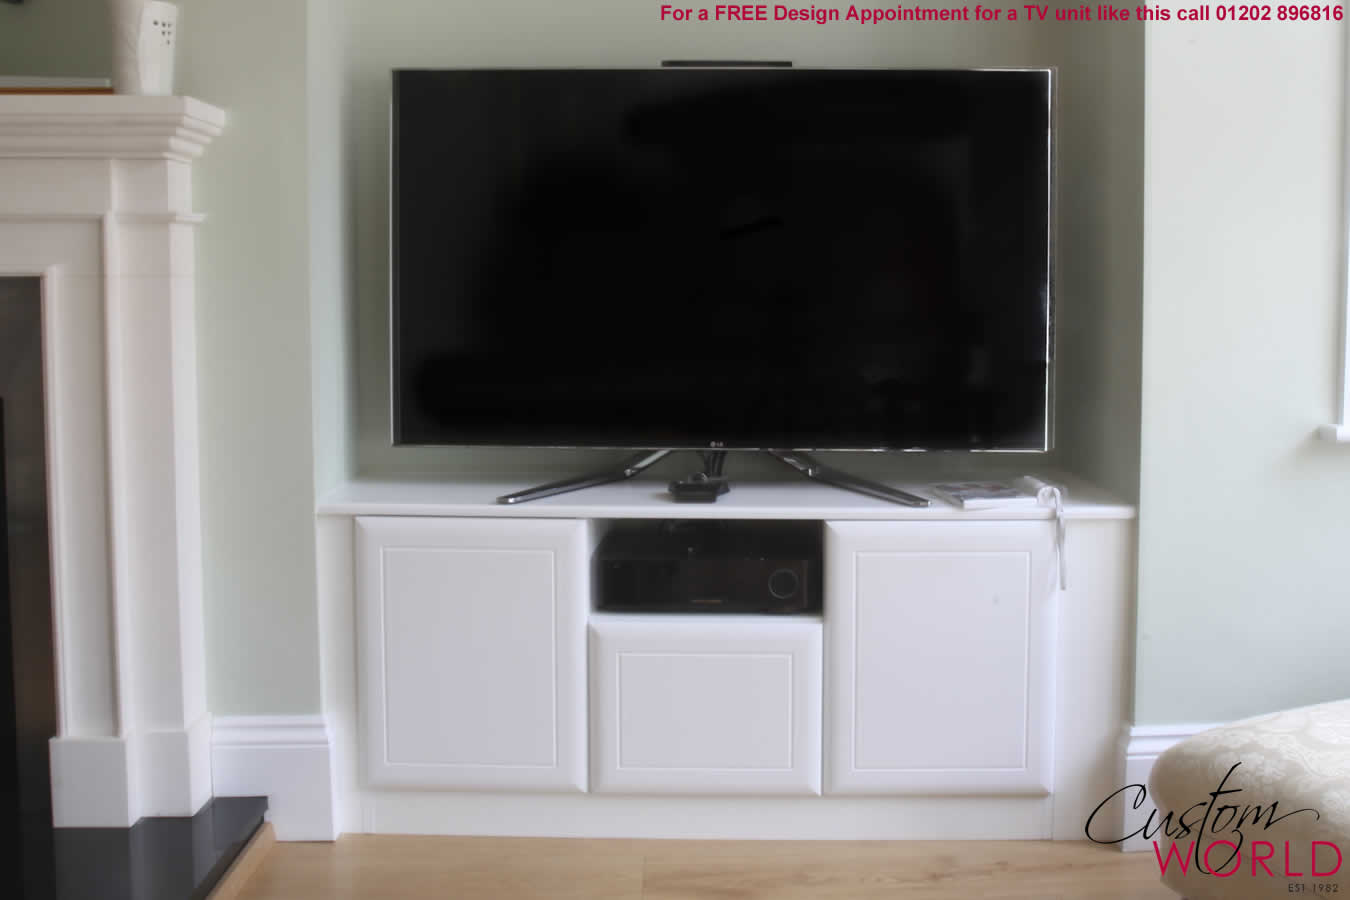 Fitted In Home Cinema Rooms Tv Stands And Units By Custom